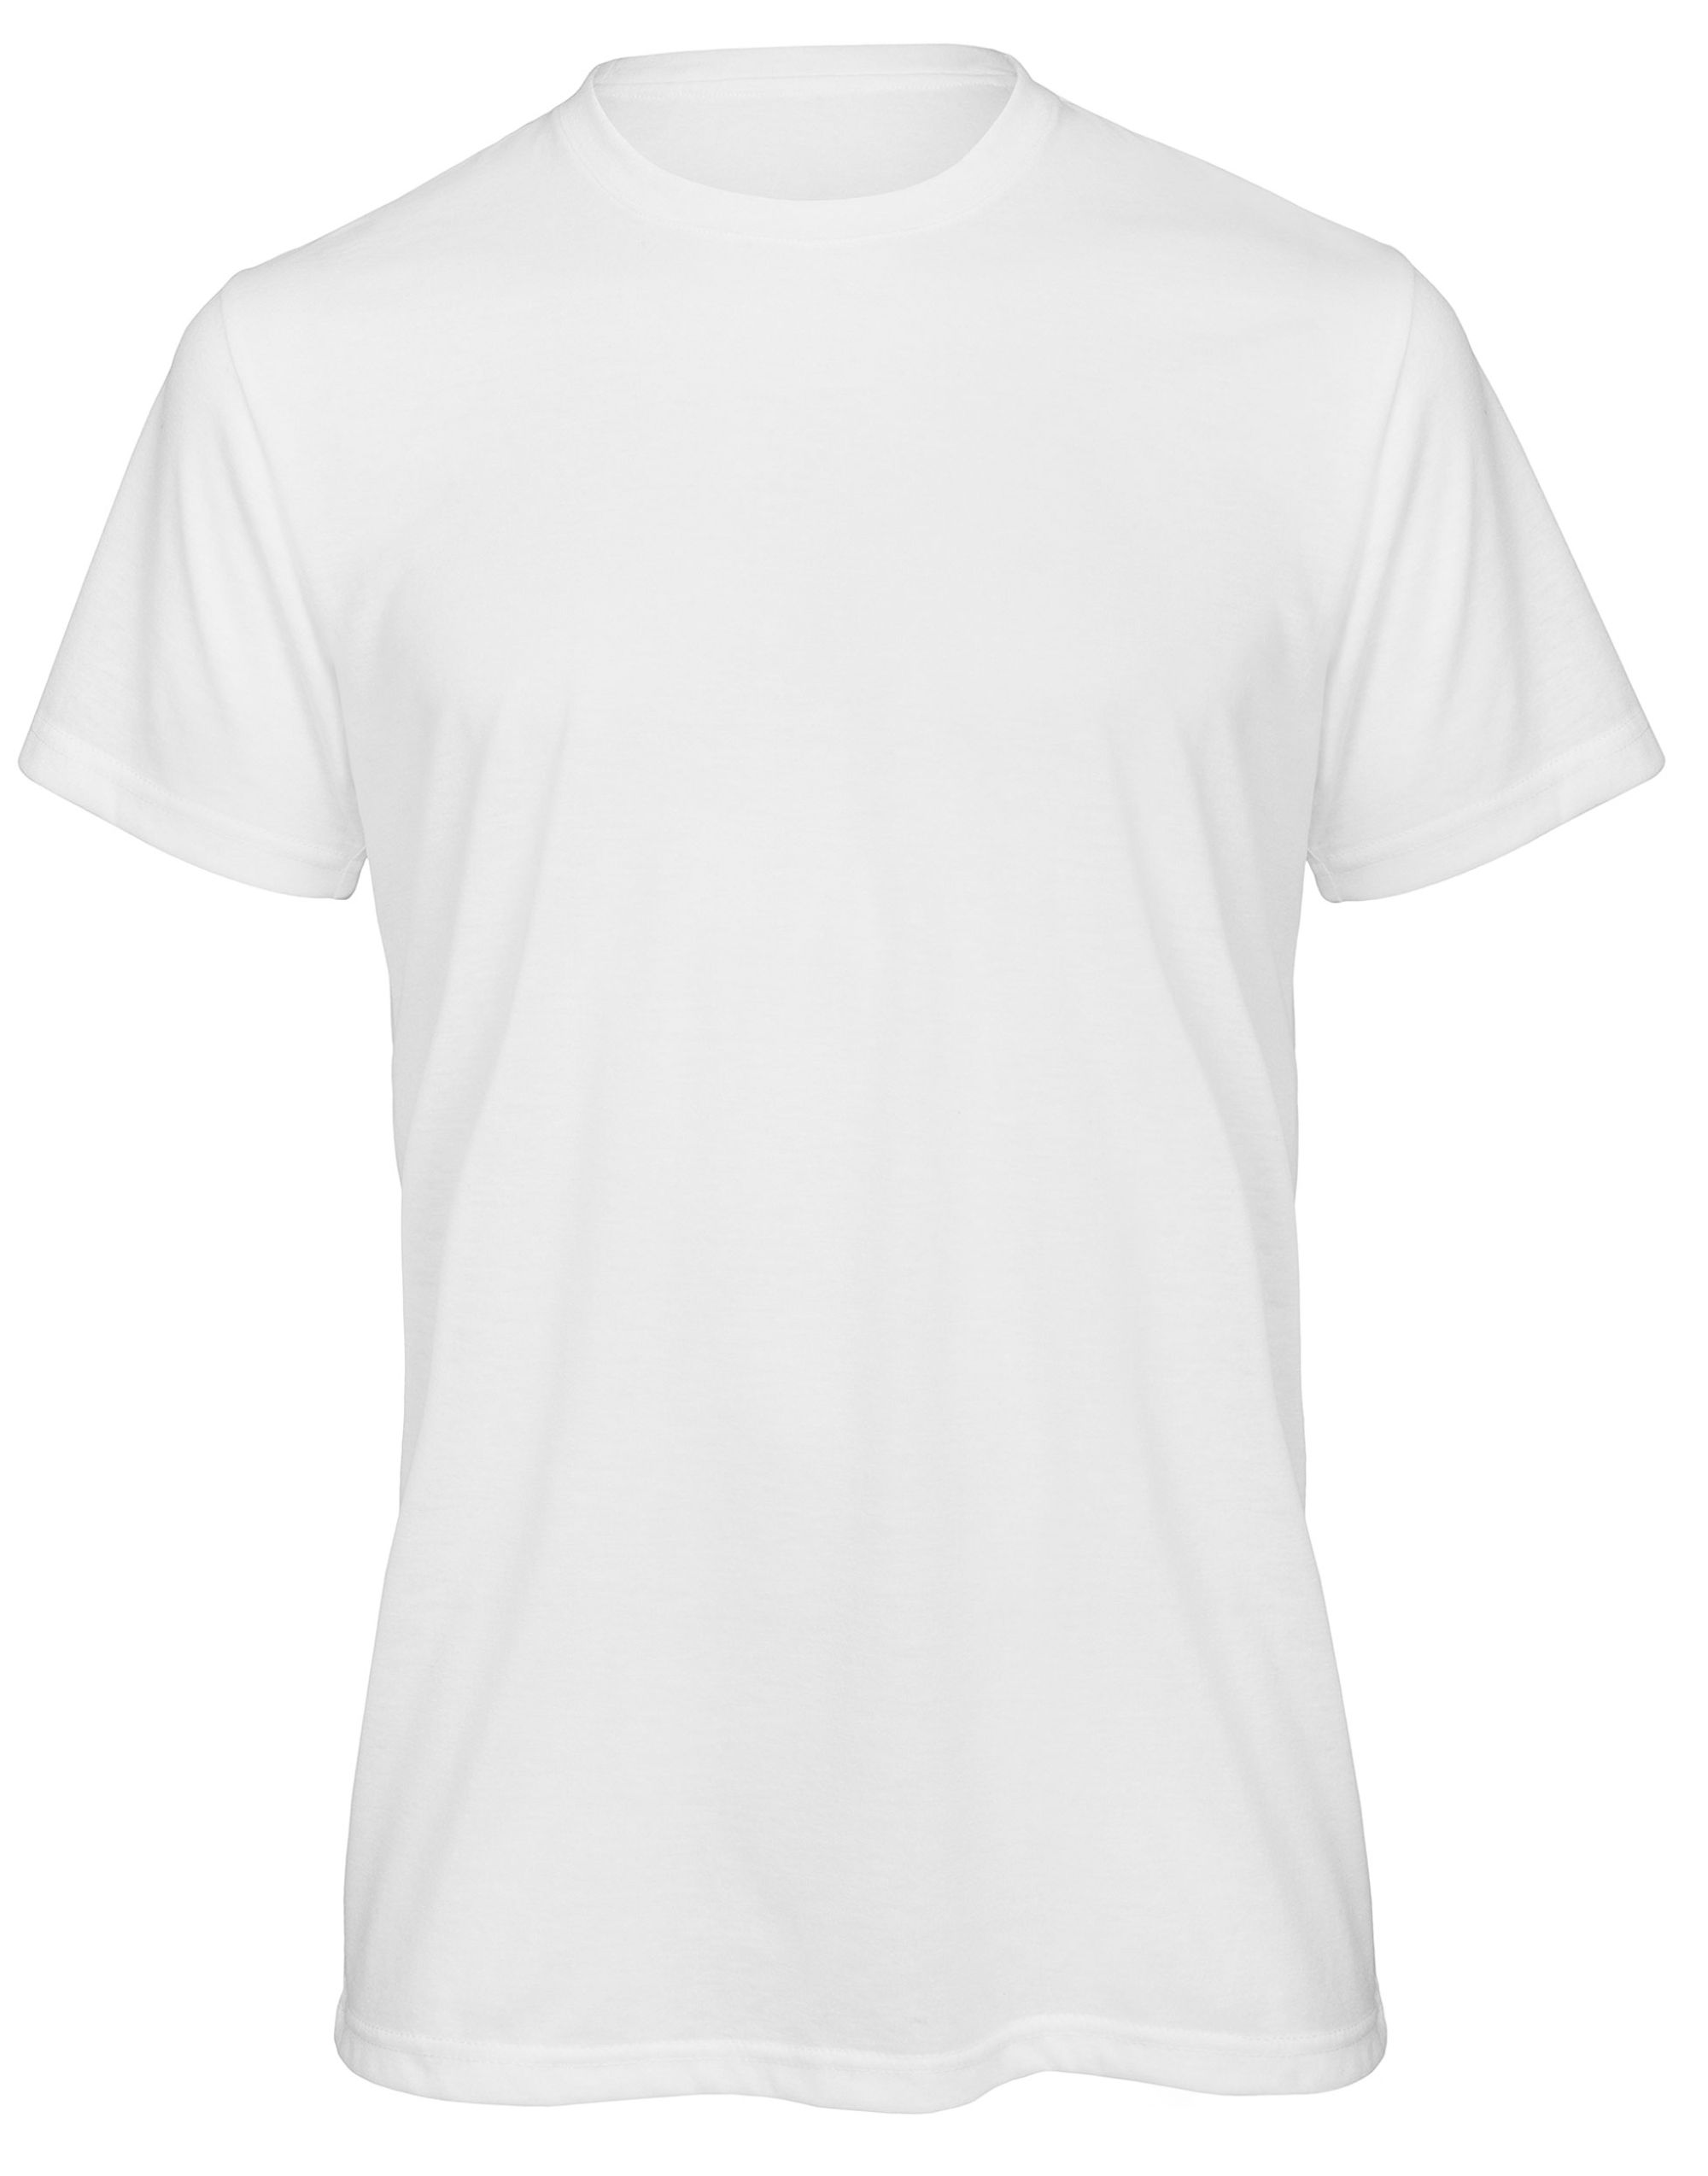 B&c Mens Favourite Sublimation Tee